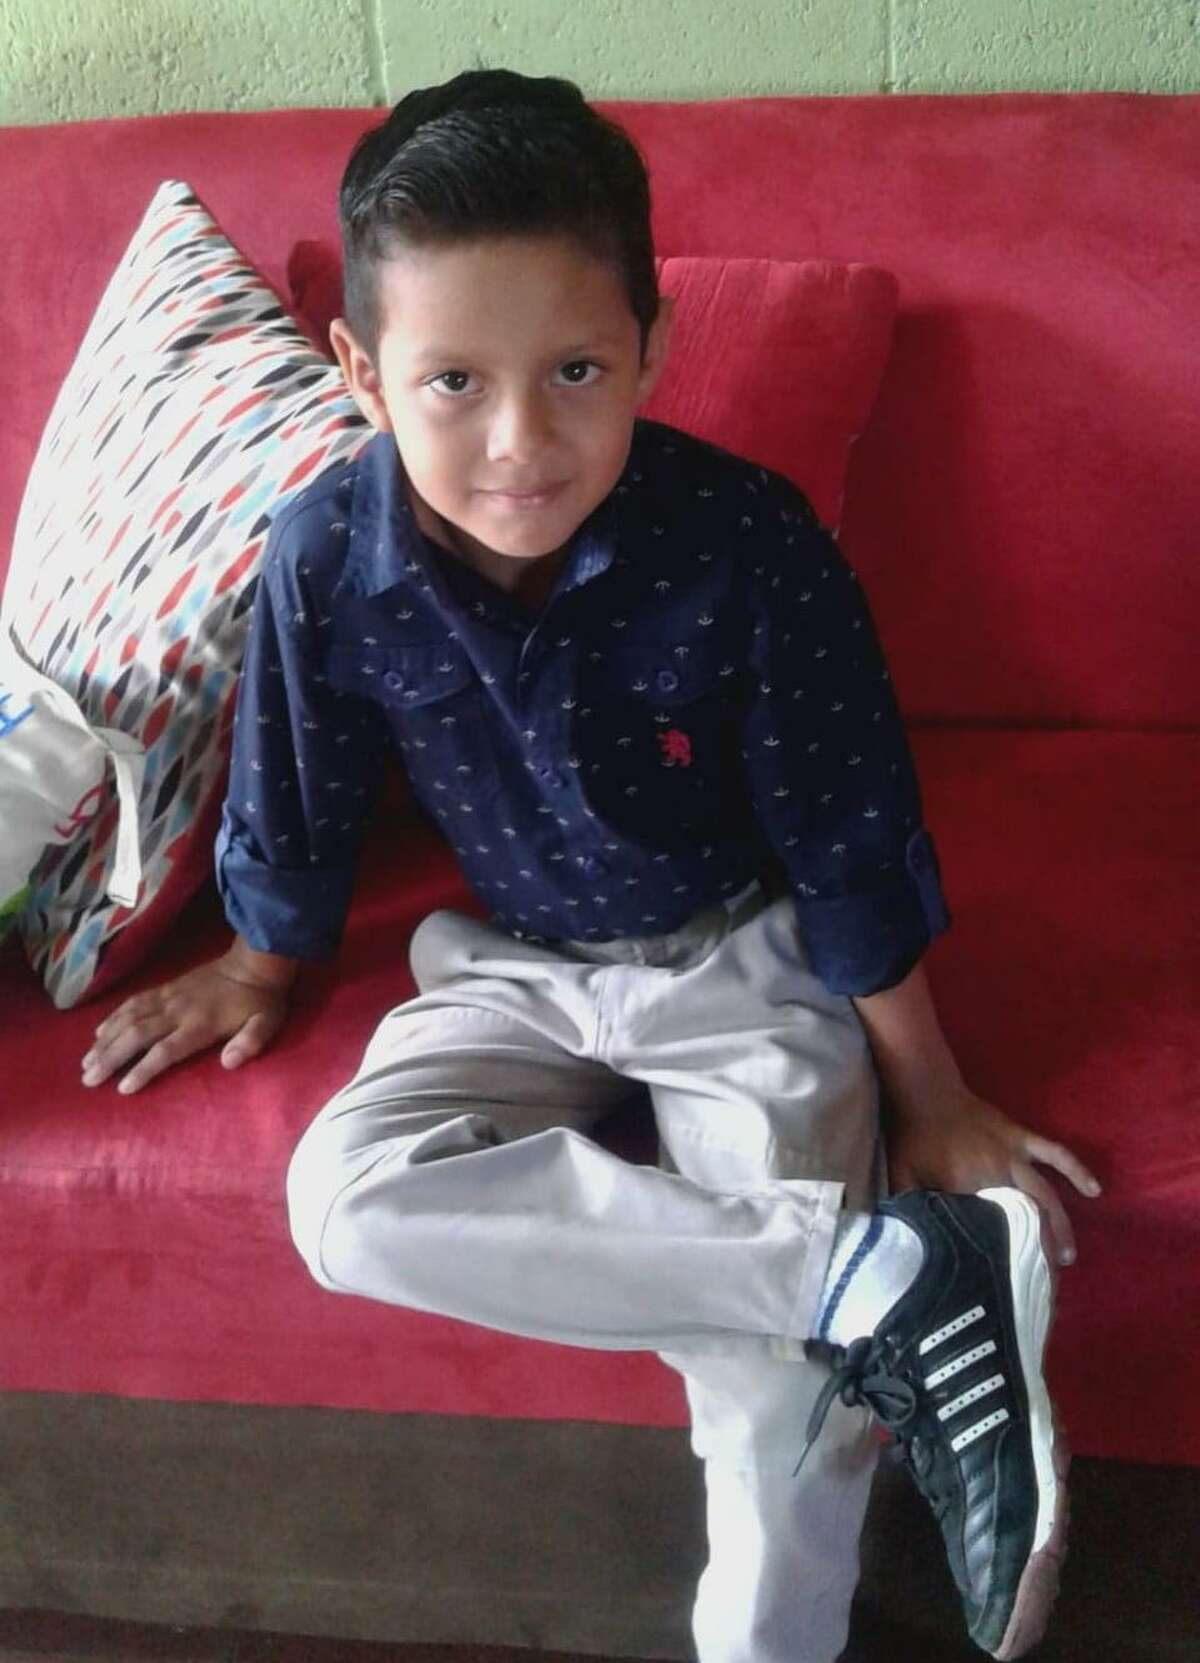 Carlos, 7, is pictured here in El Salvador. The boy and his sister are in government custody after they were separated from their father at the border when the government accused him of being in a gang. The father denies it, saying he fled El Salvador because he was being targeted by gang members who tried to extort him.